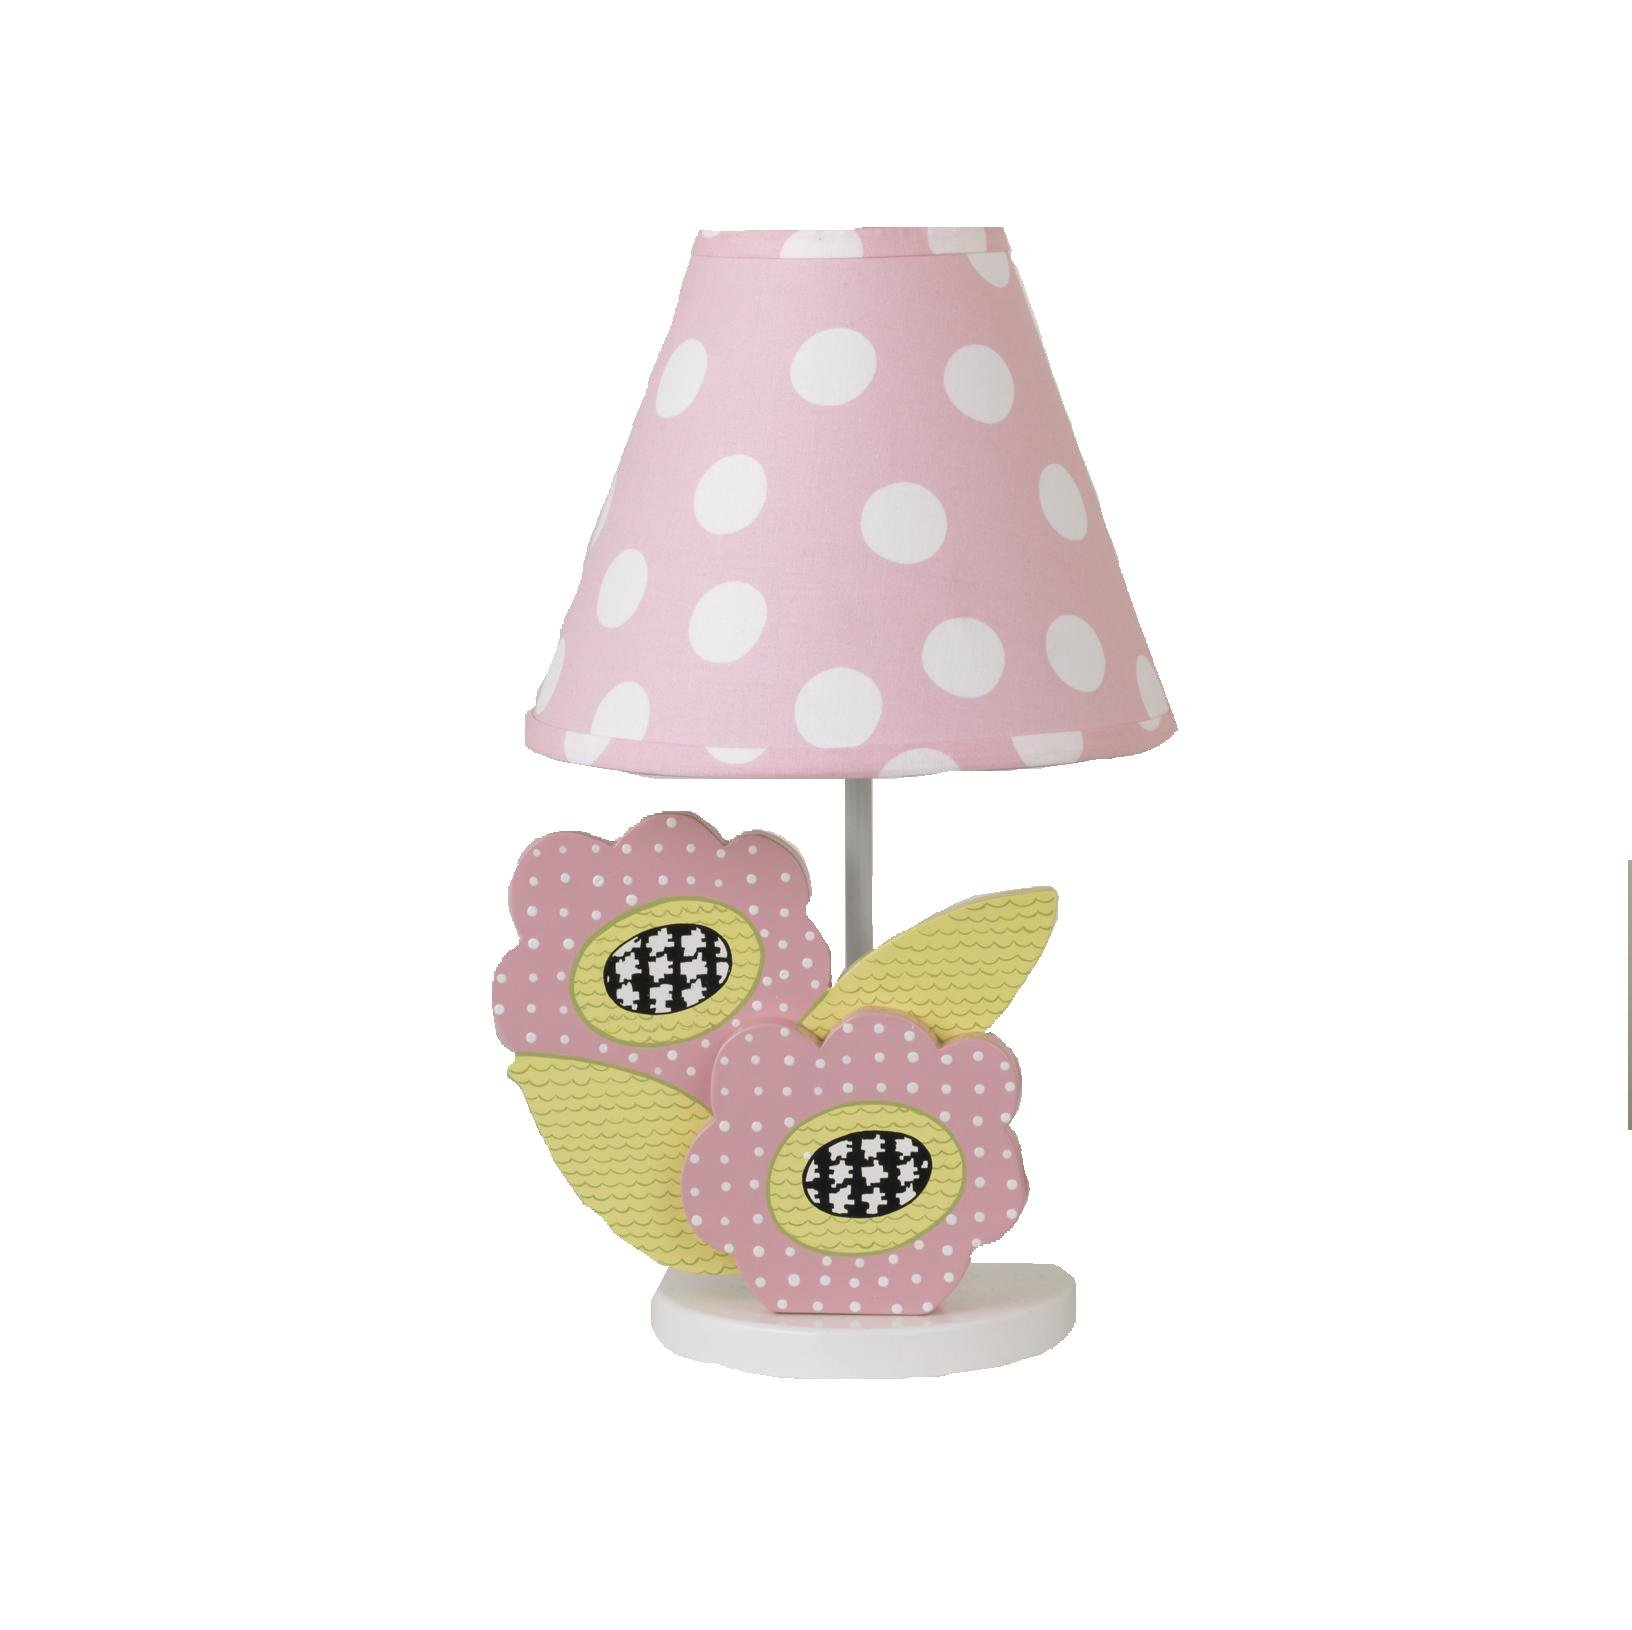 Cotton Tale Designs Poppy Decorator Lamp by Cotton Tale Designs